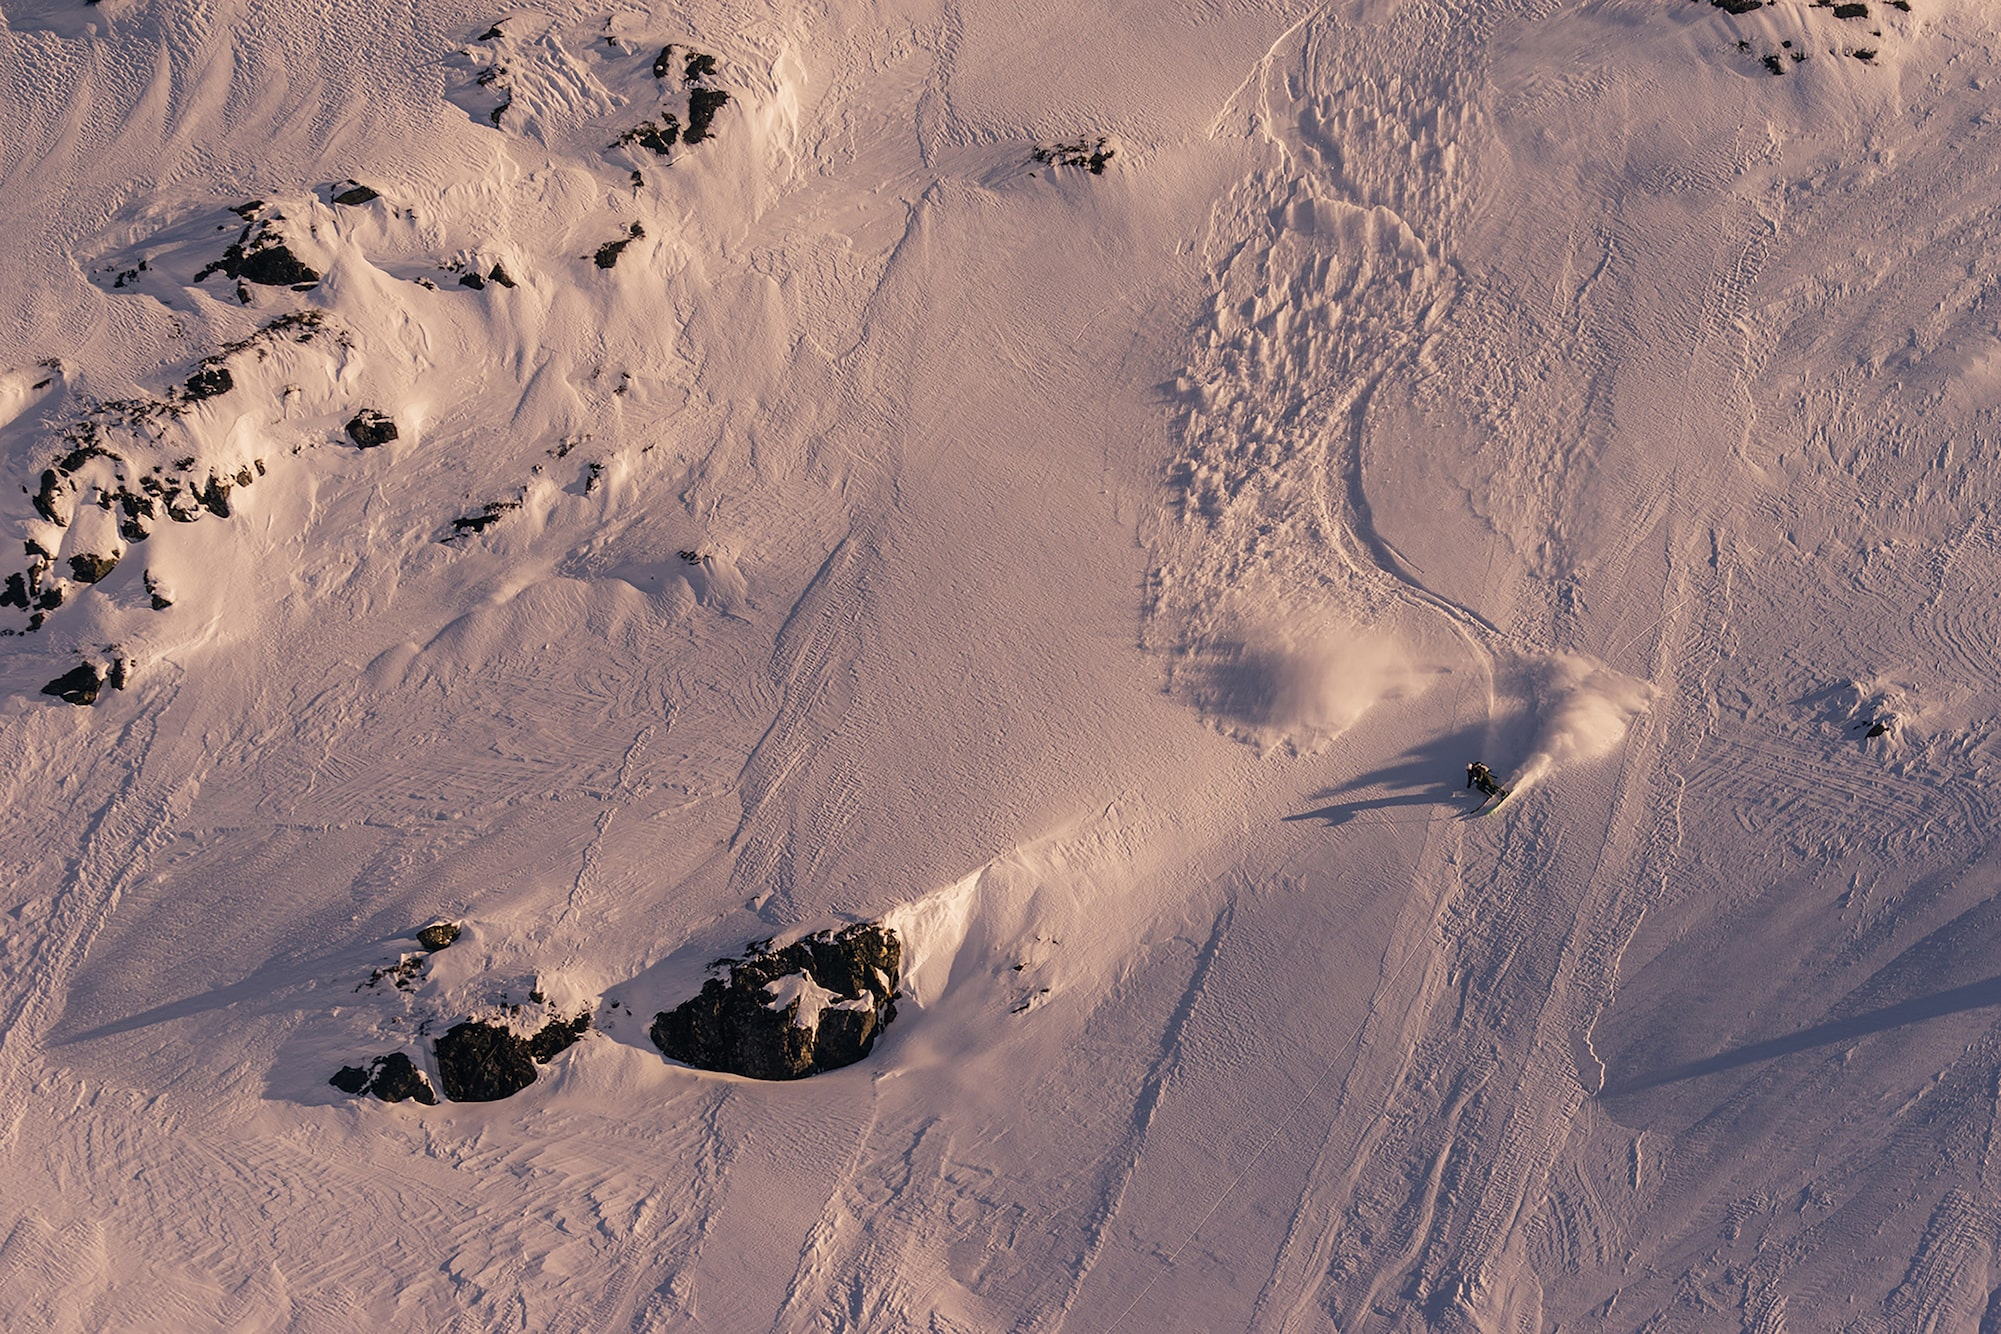 jaakko posti sony alpha 7 birds eye view of a skier making his way down a fast slope